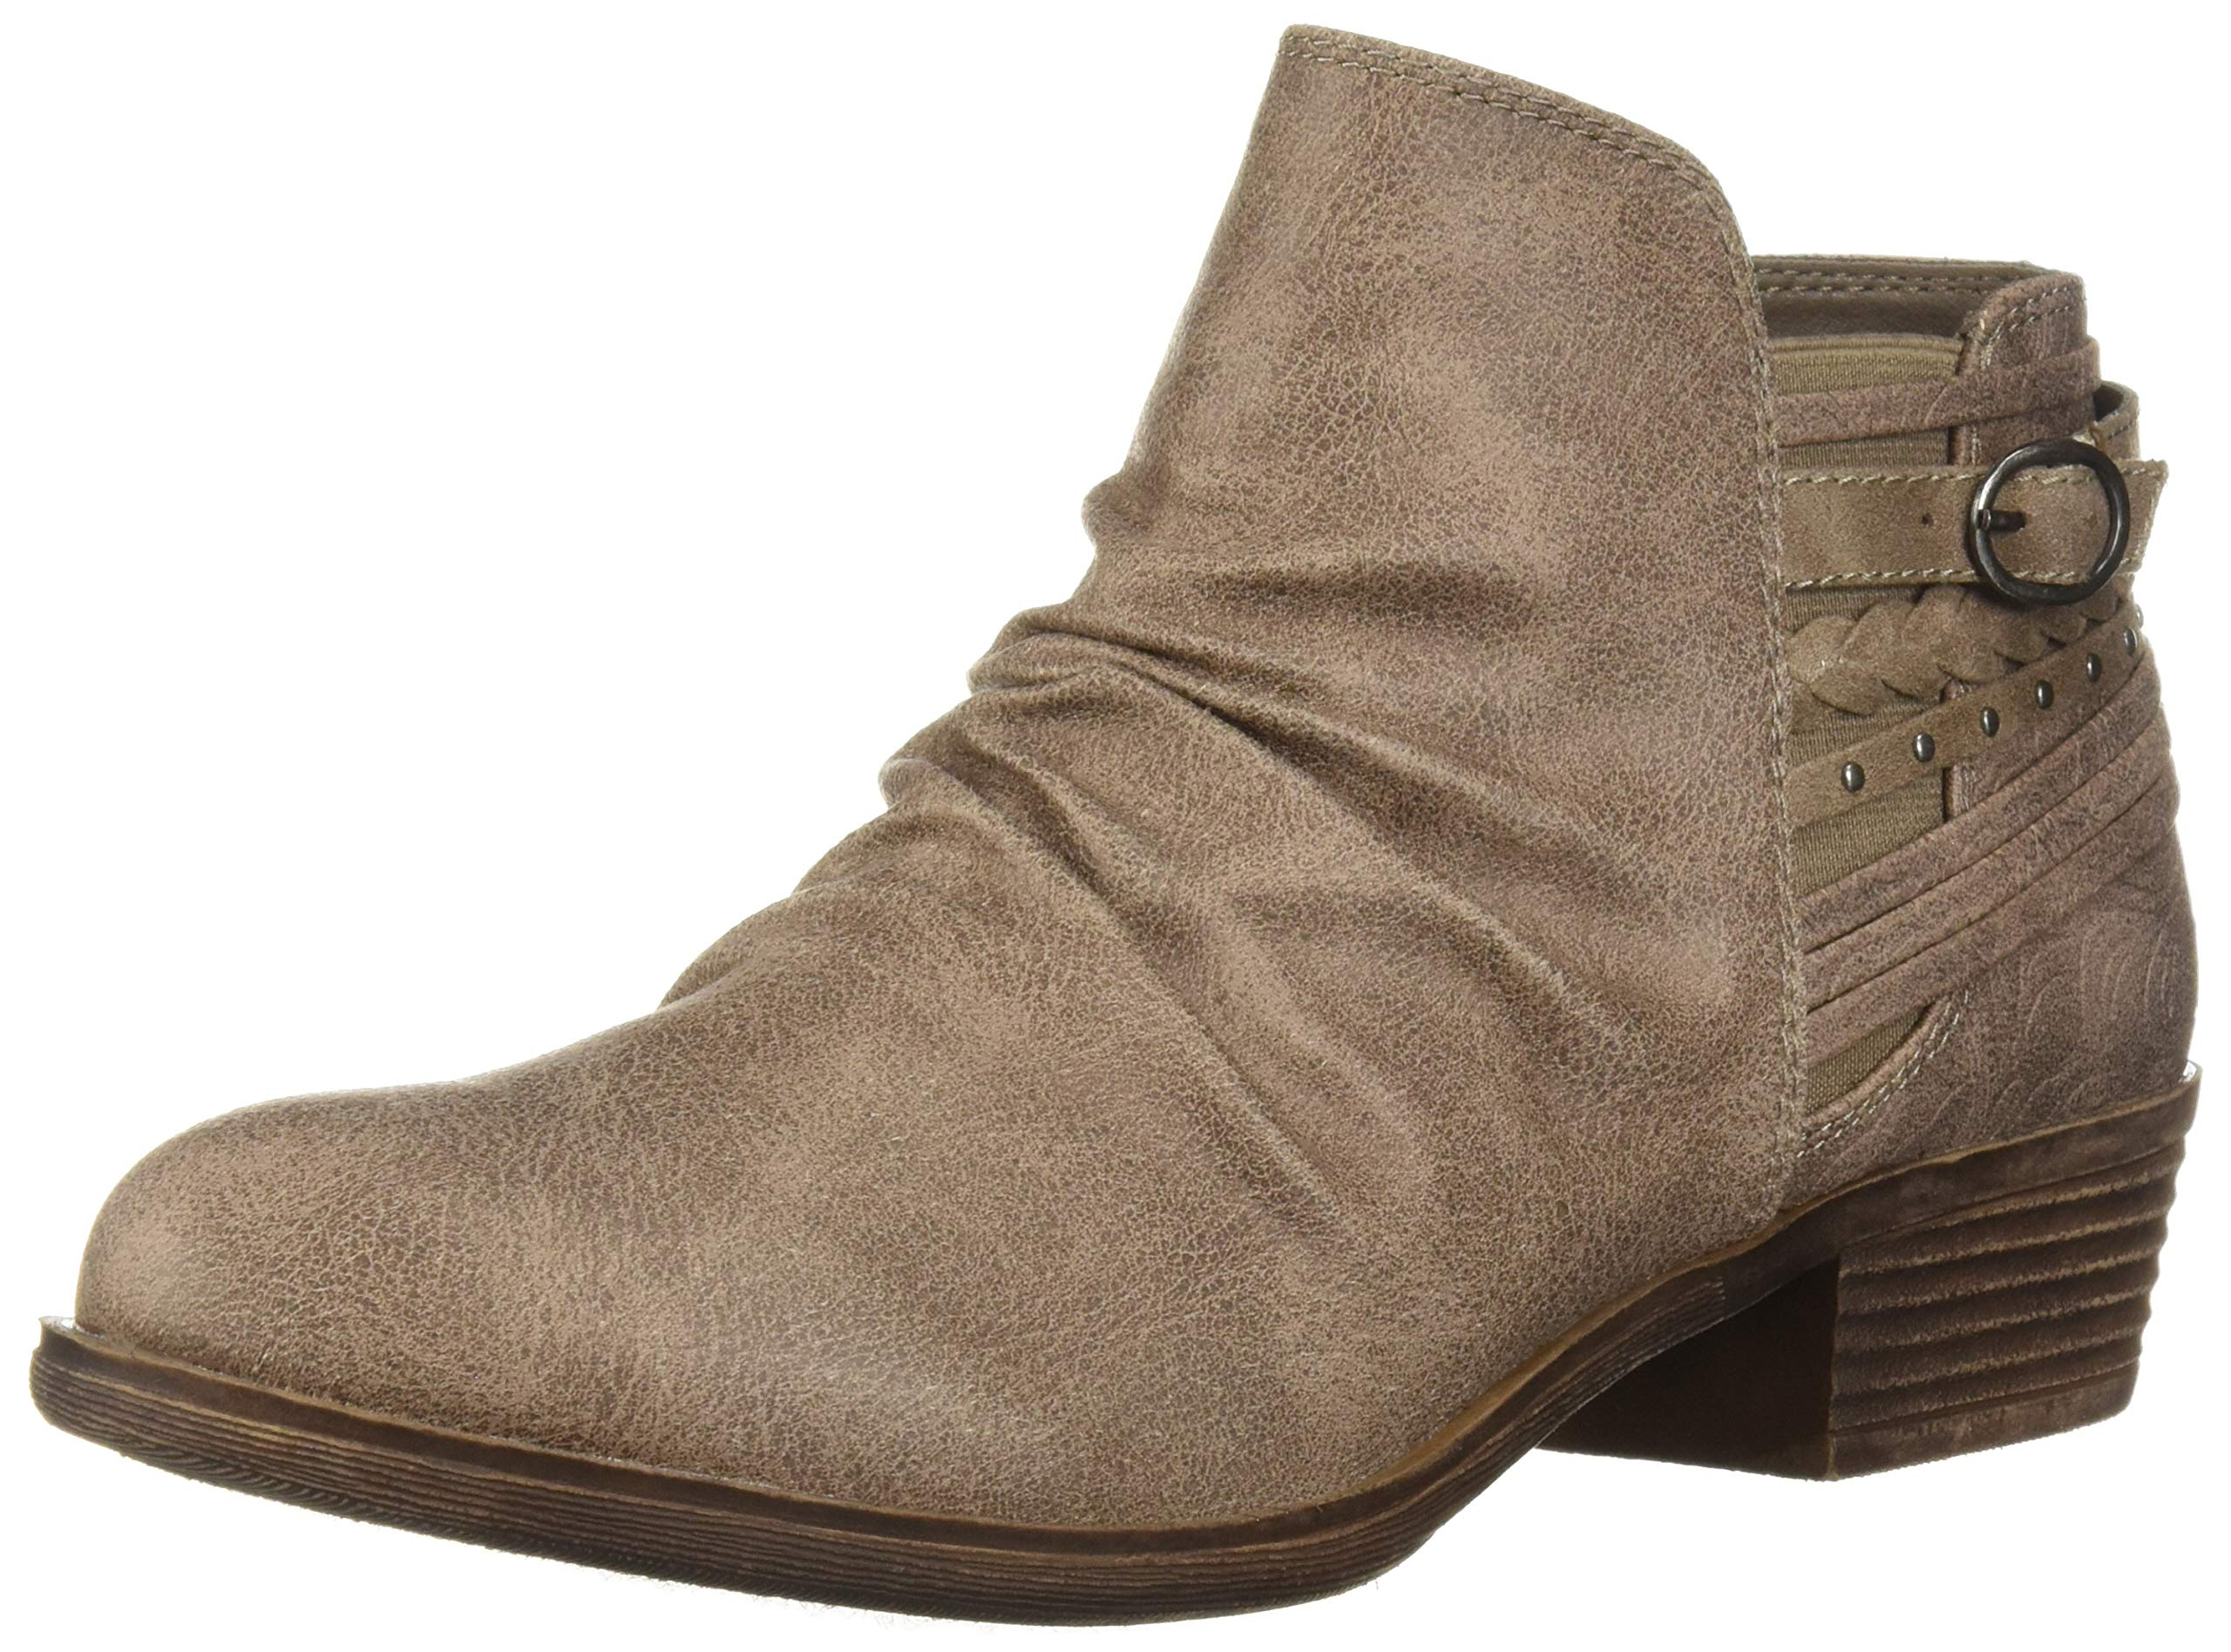 Sugar Women's Tali Casual Trendy Low Heel Scrunch Bootie with Back Strap Details Ankle Boot, Stone Fab Suede, 7 Medium US